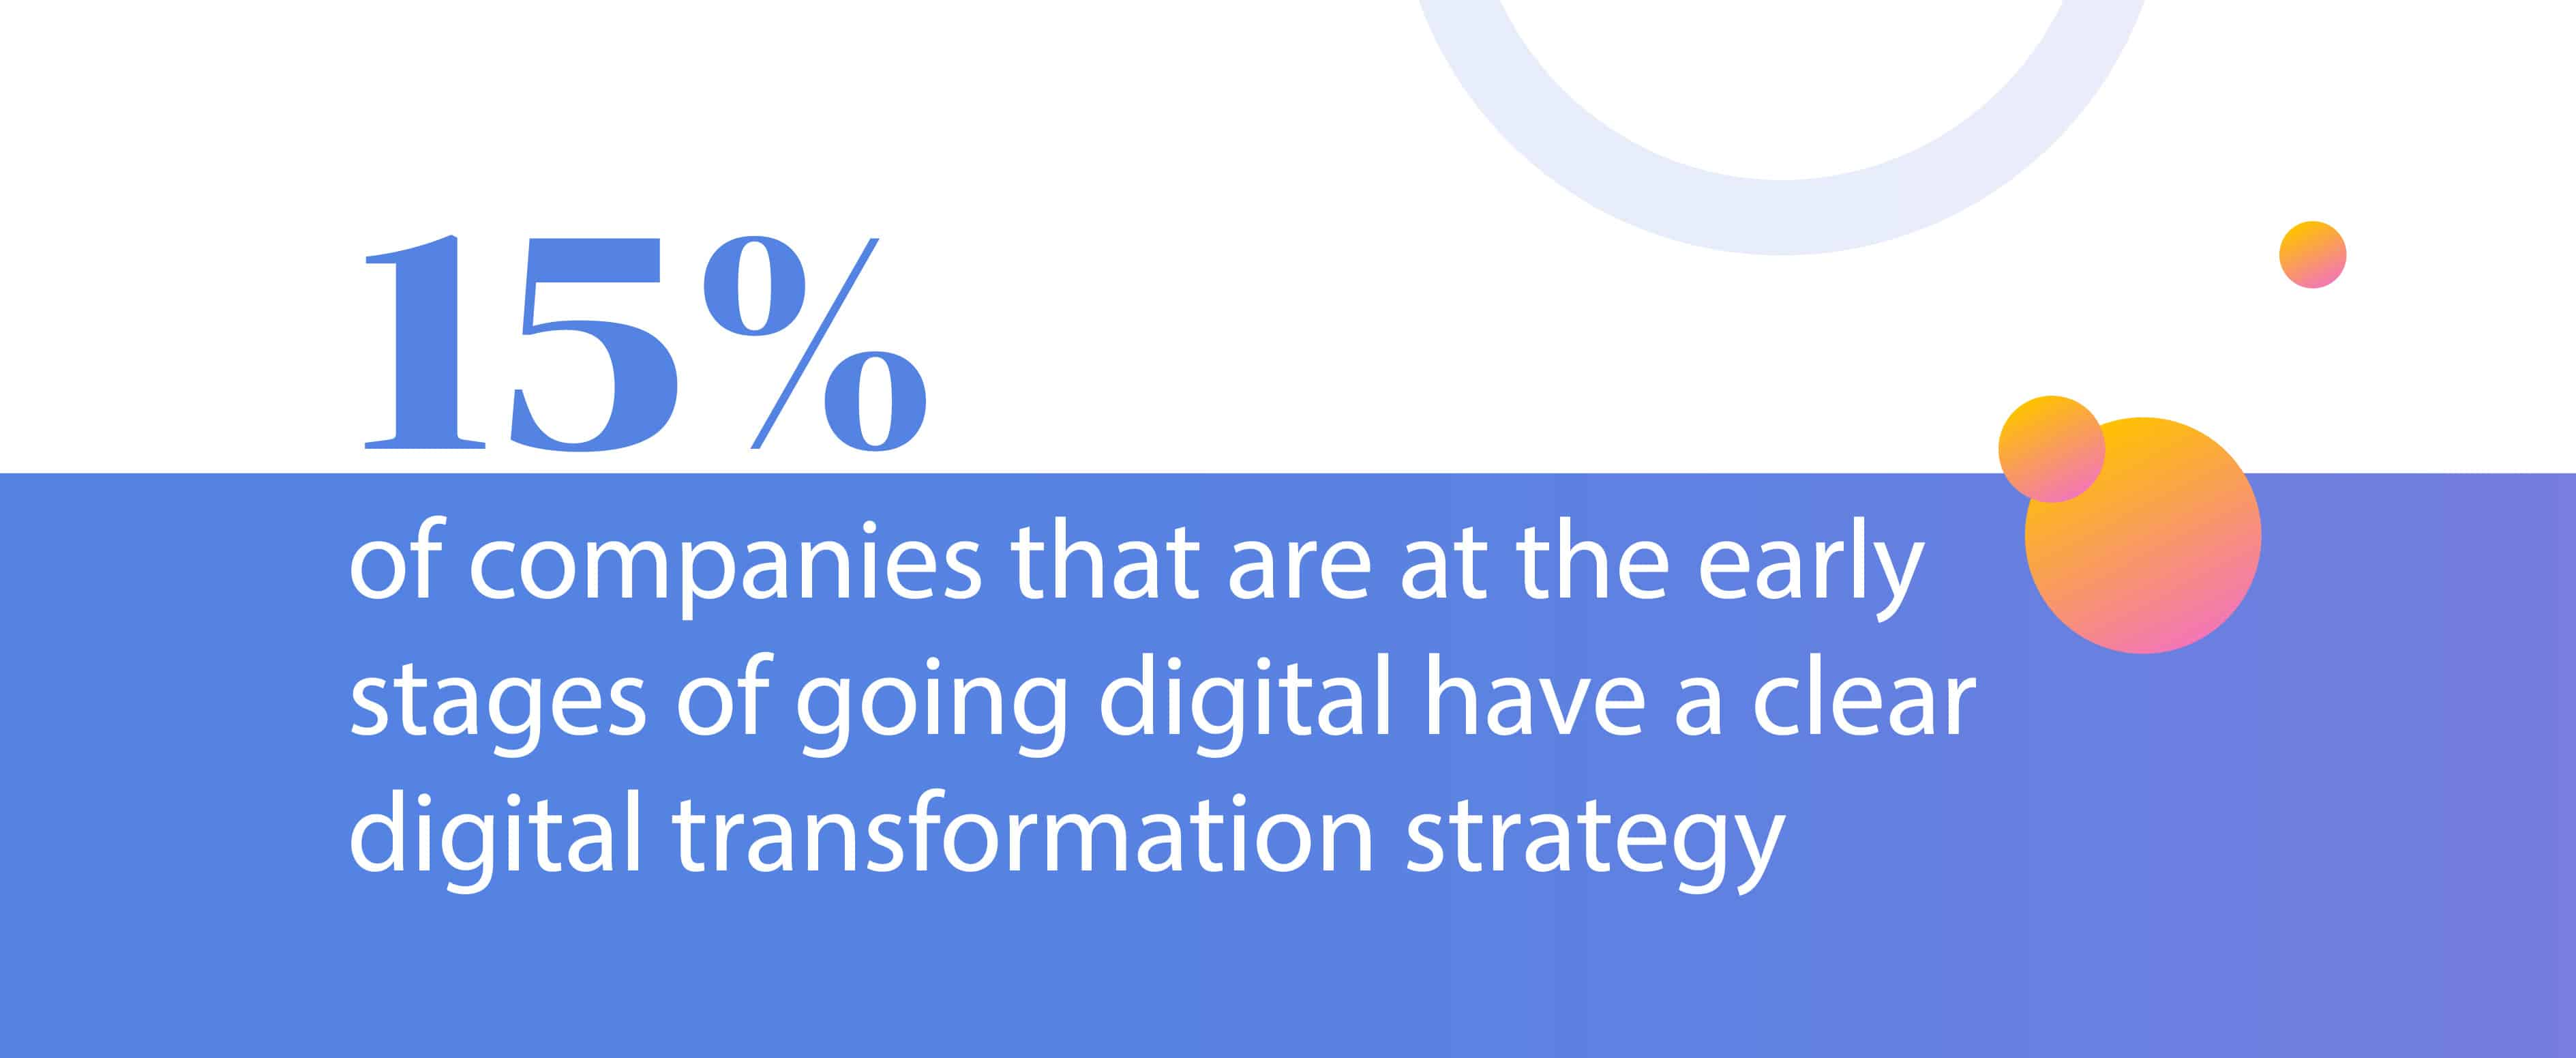 importance of digital transformation strategy